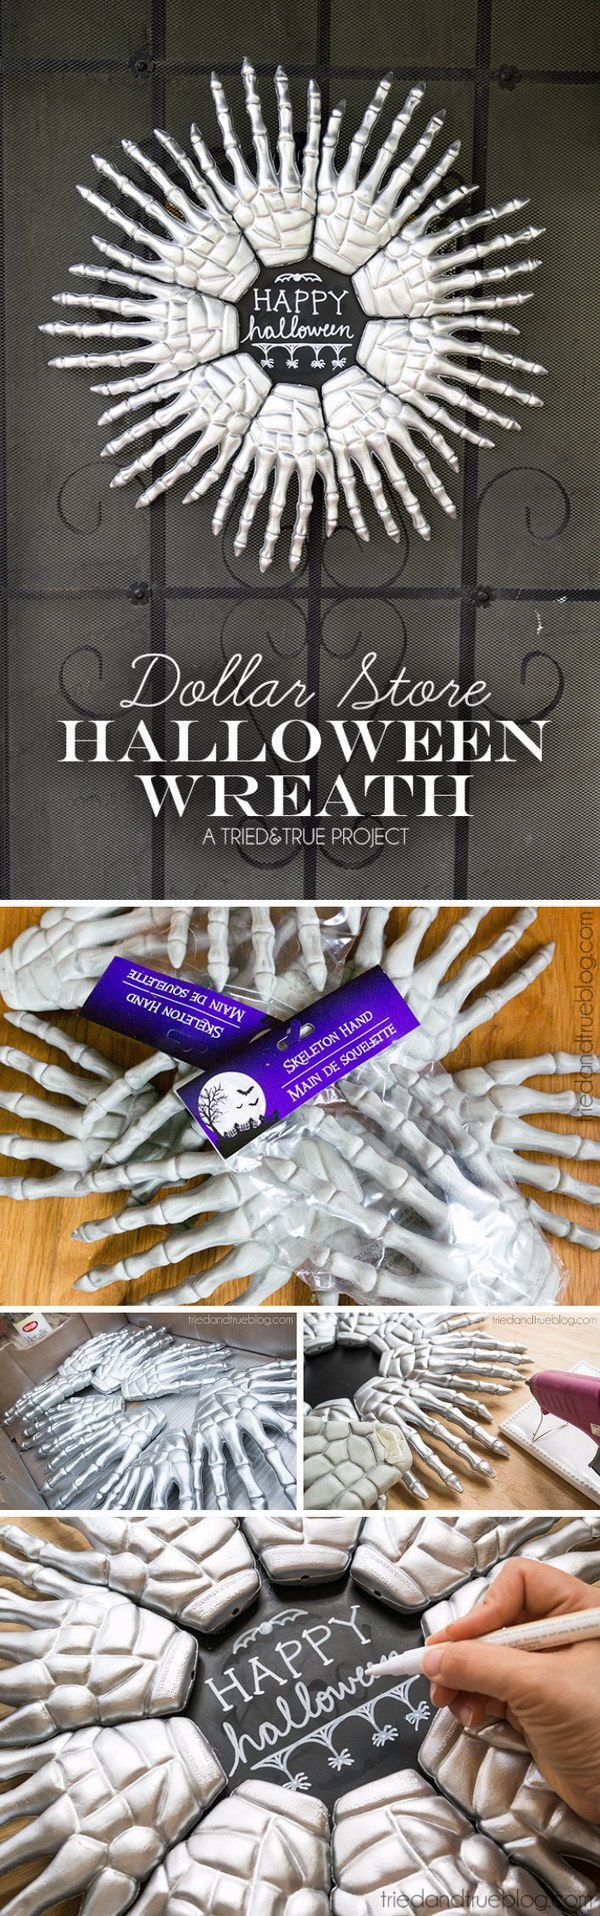 Best 25+ Dollar store halloween ideas on Pinterest ...